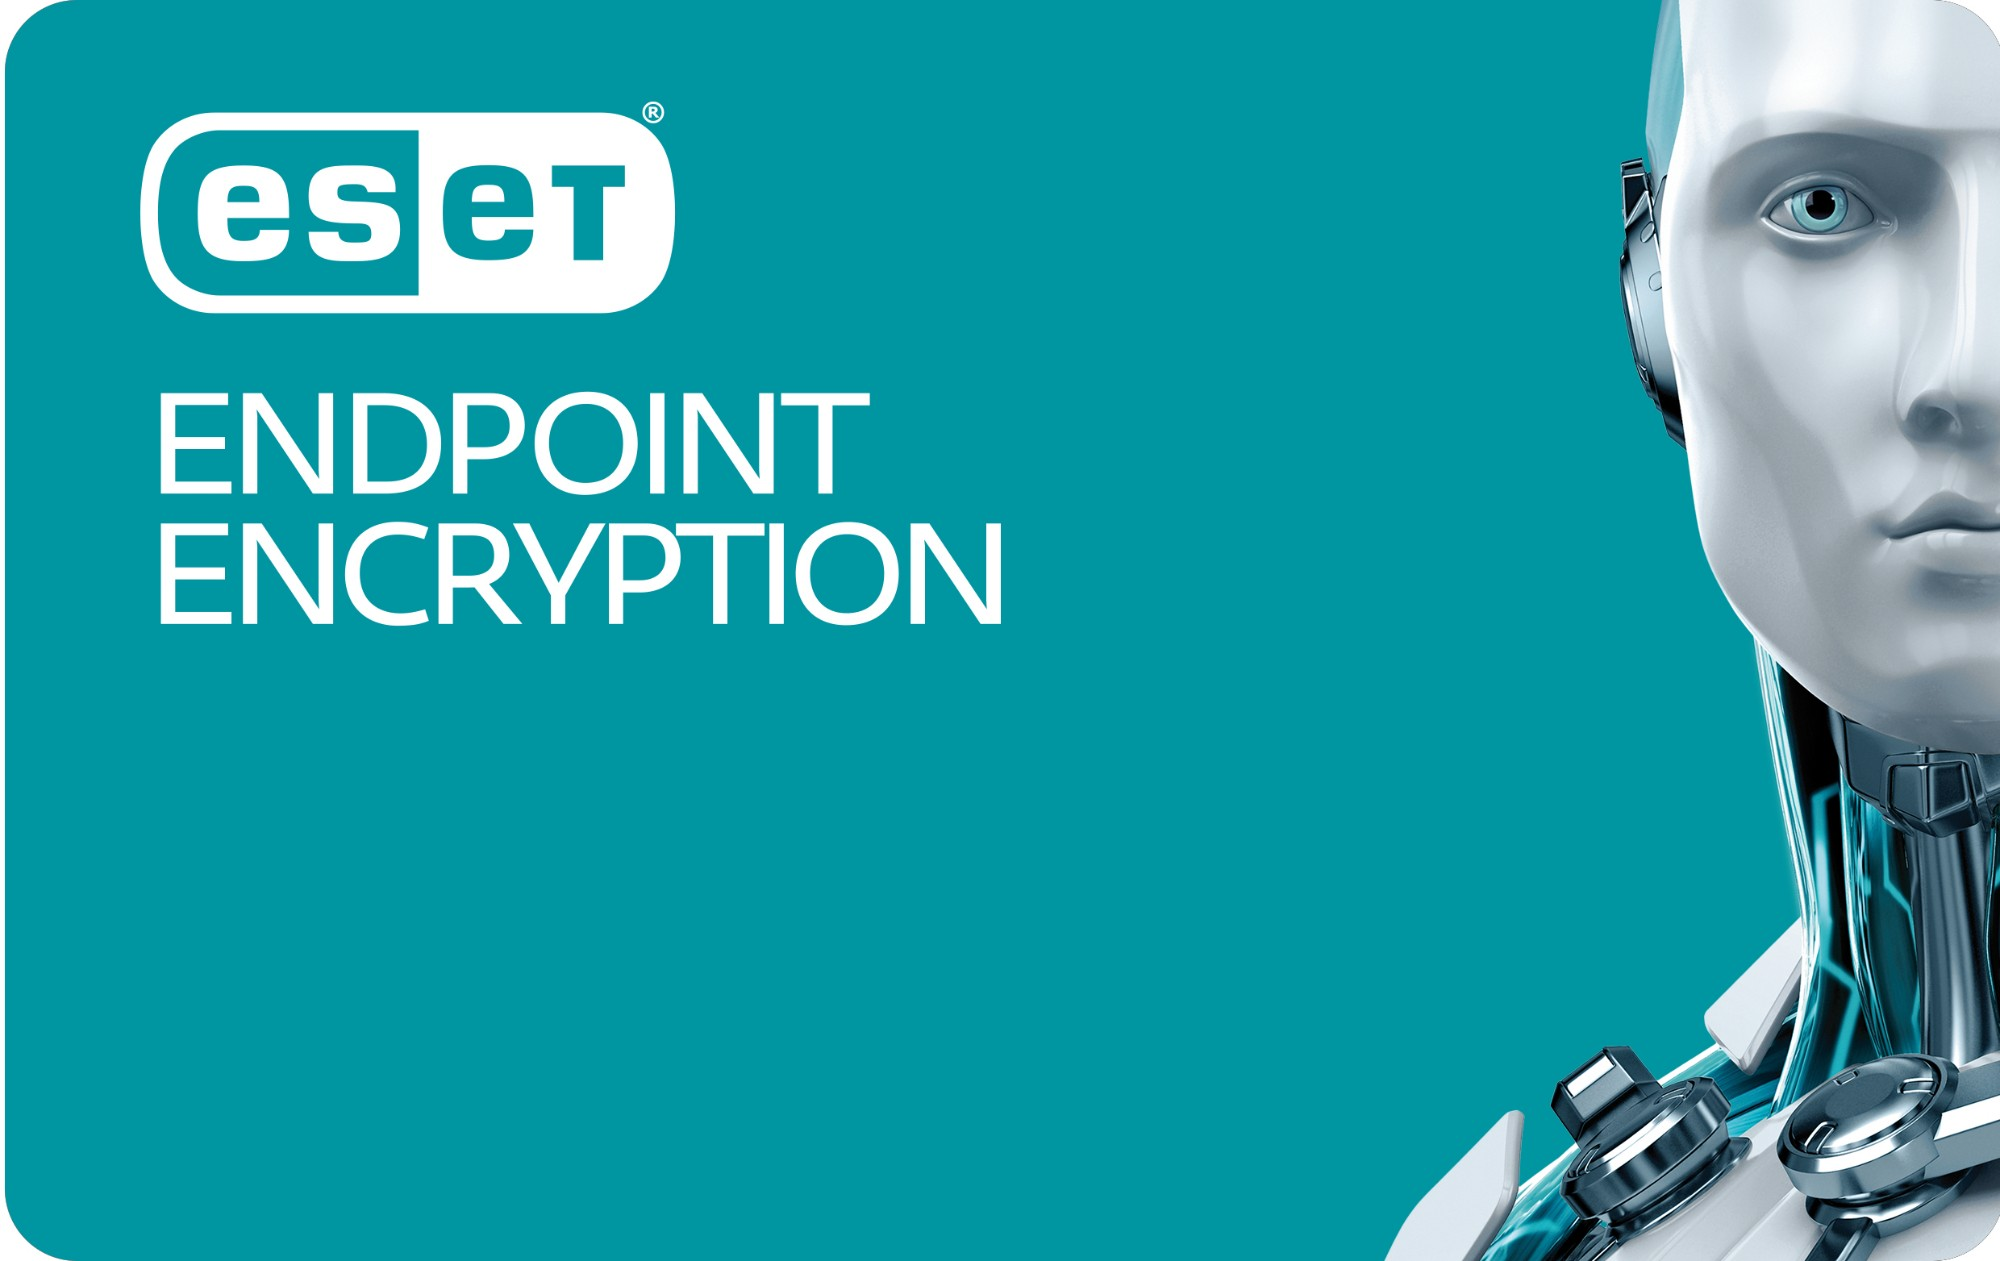 ESET Endpoint Encryption Pro 100 - 299 User Government (GOV) license 100 - 299 license(s) 2 year(s)